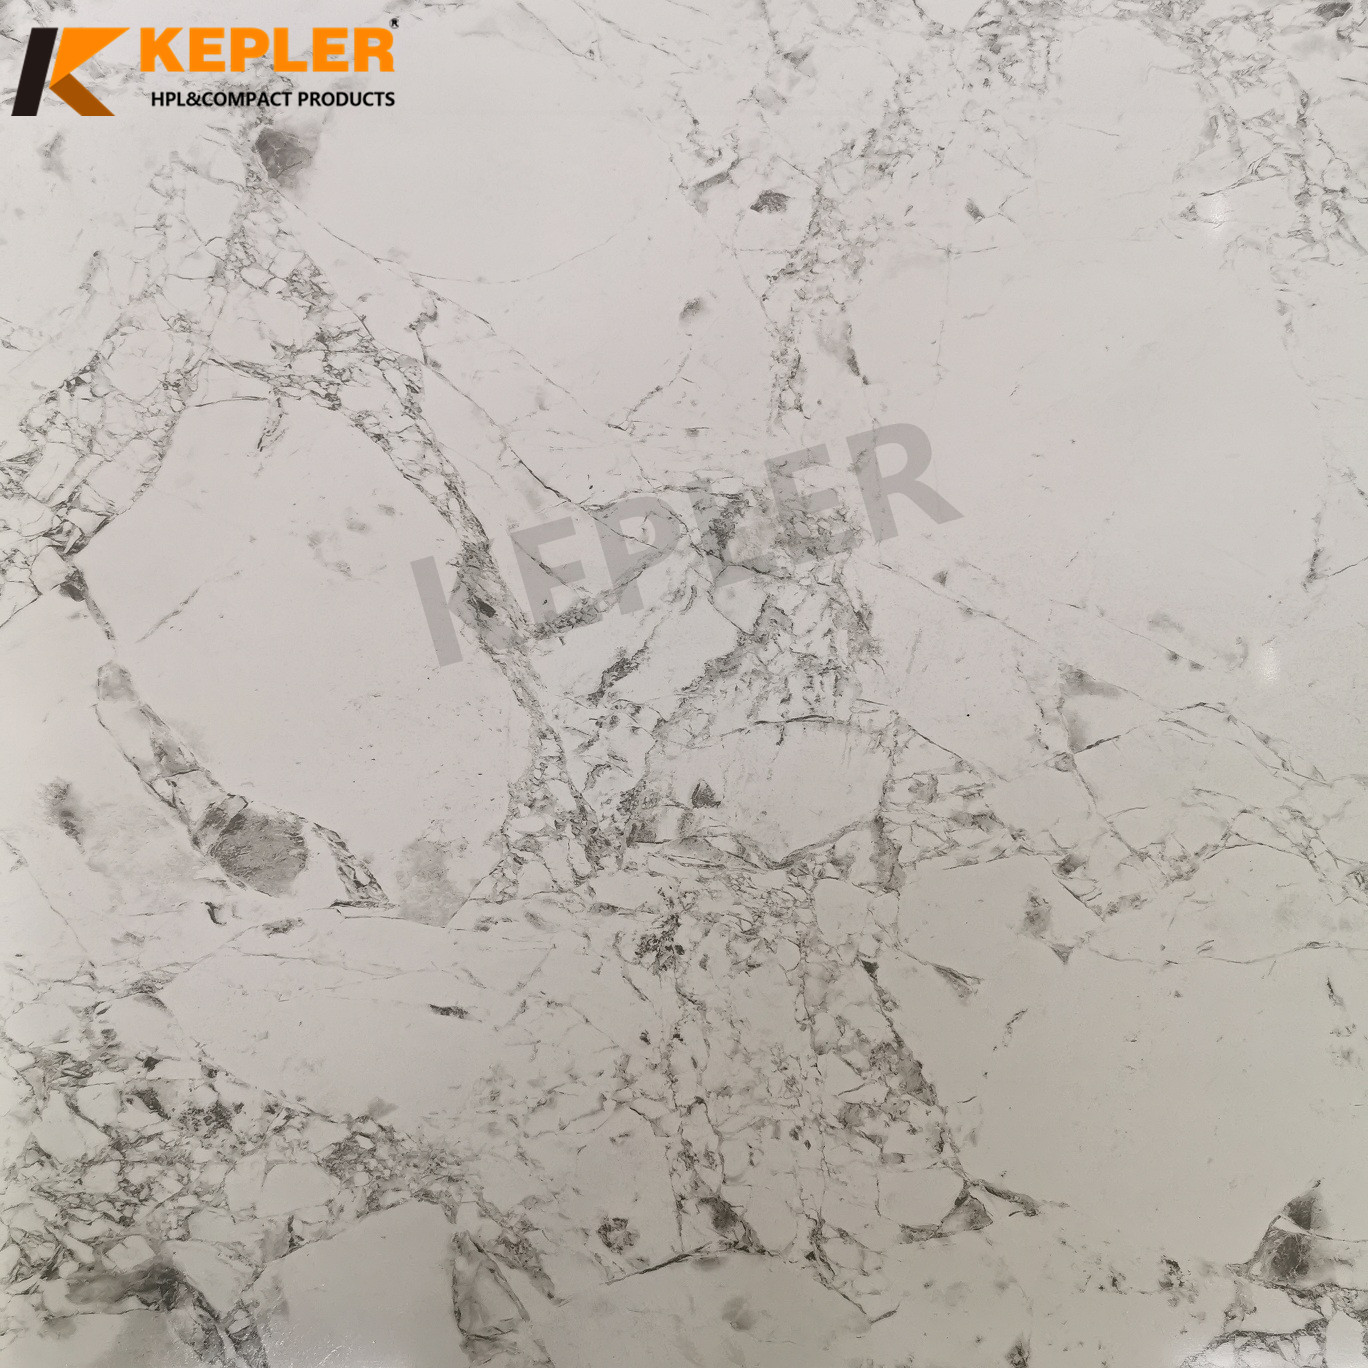 Kepler Marble Design 2mm HPL Compact Board Used in Bathroom